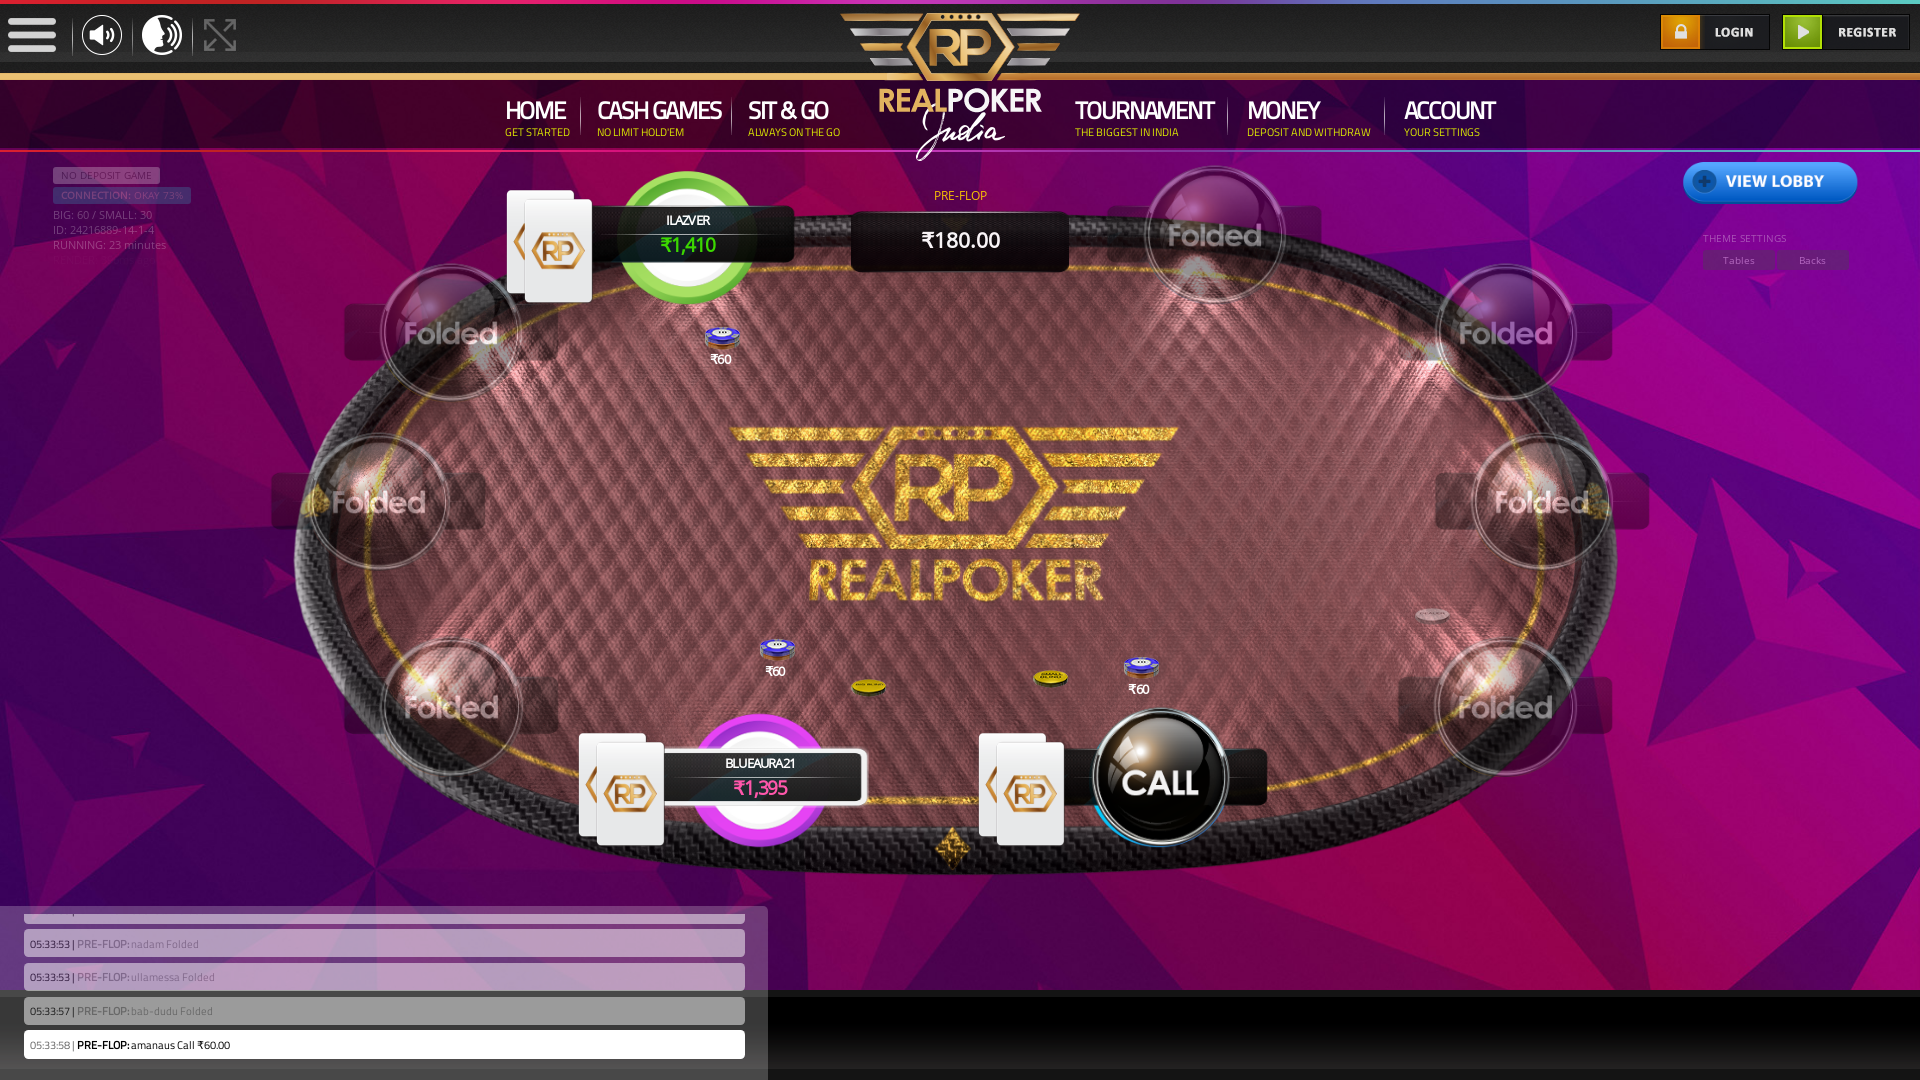 Boat Club Road, Pune Online Poker from September